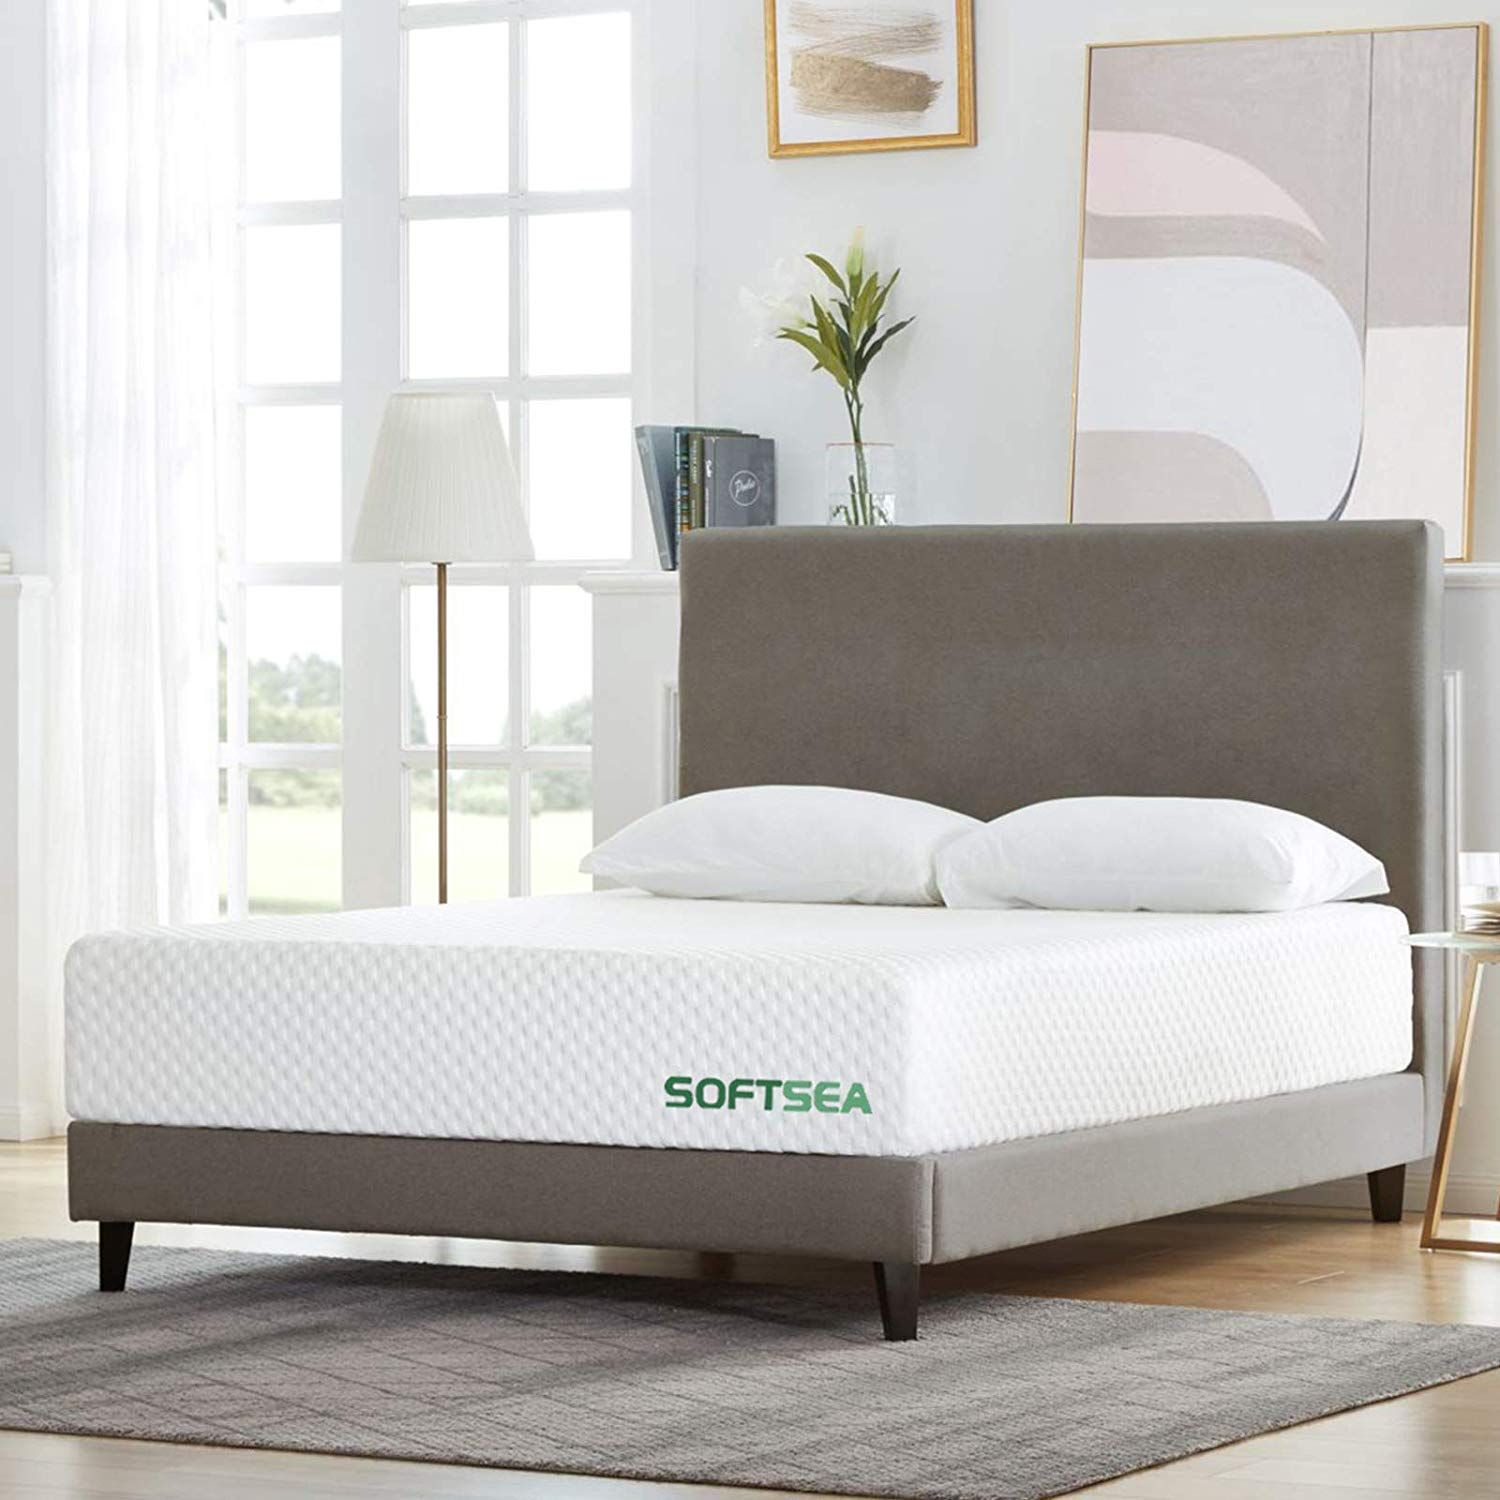 Softsea 12 Inch Cooling Gel Memory Foam Mattress In A Box For A